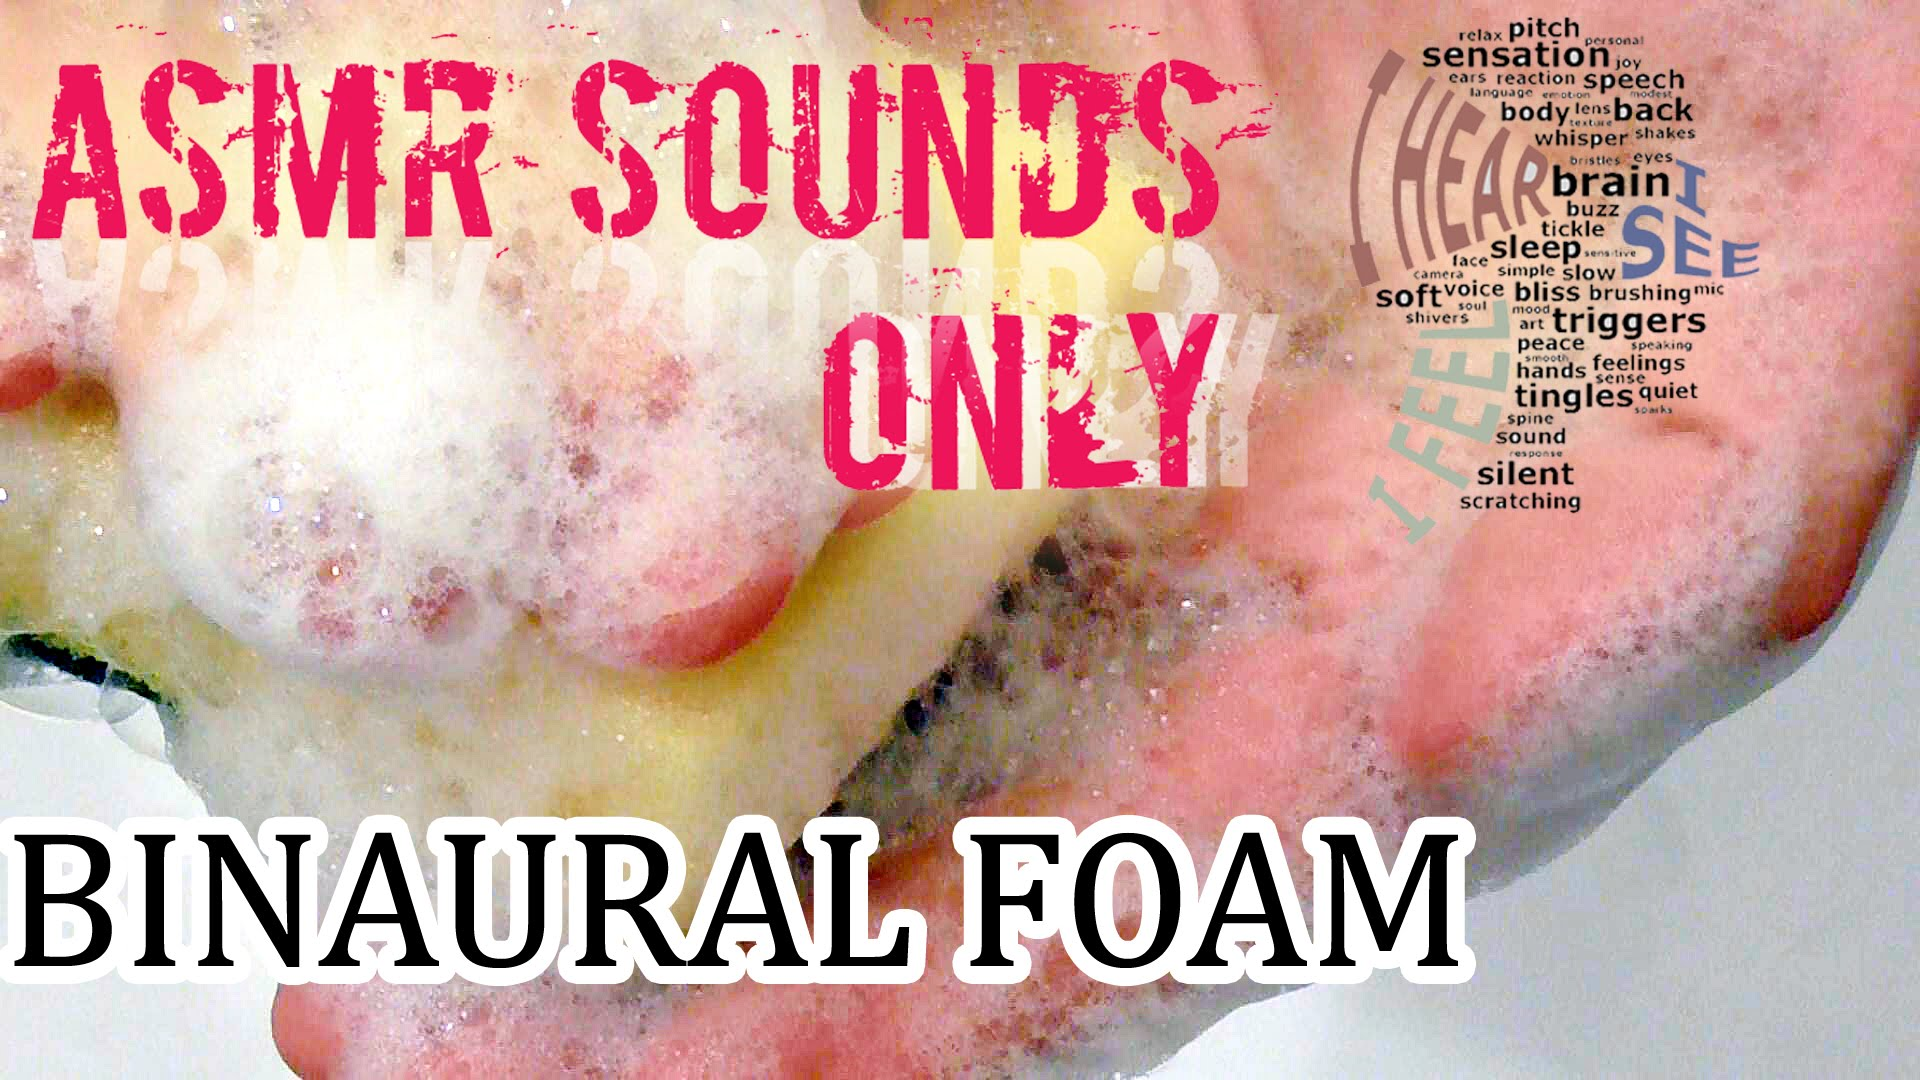 Binaural Foam Scratching Tapping Relaxing Session